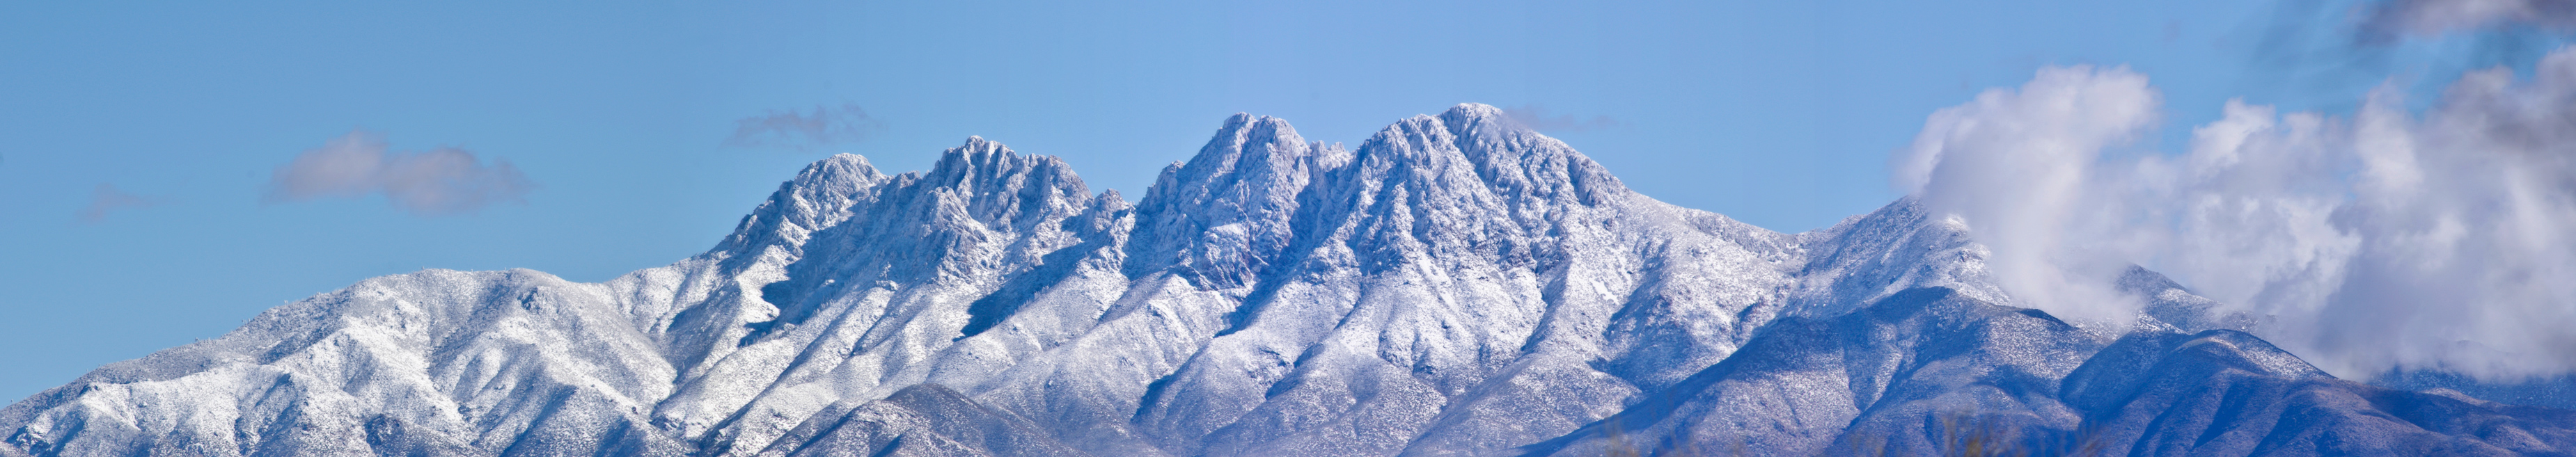 Four Peaks Arizona Snow